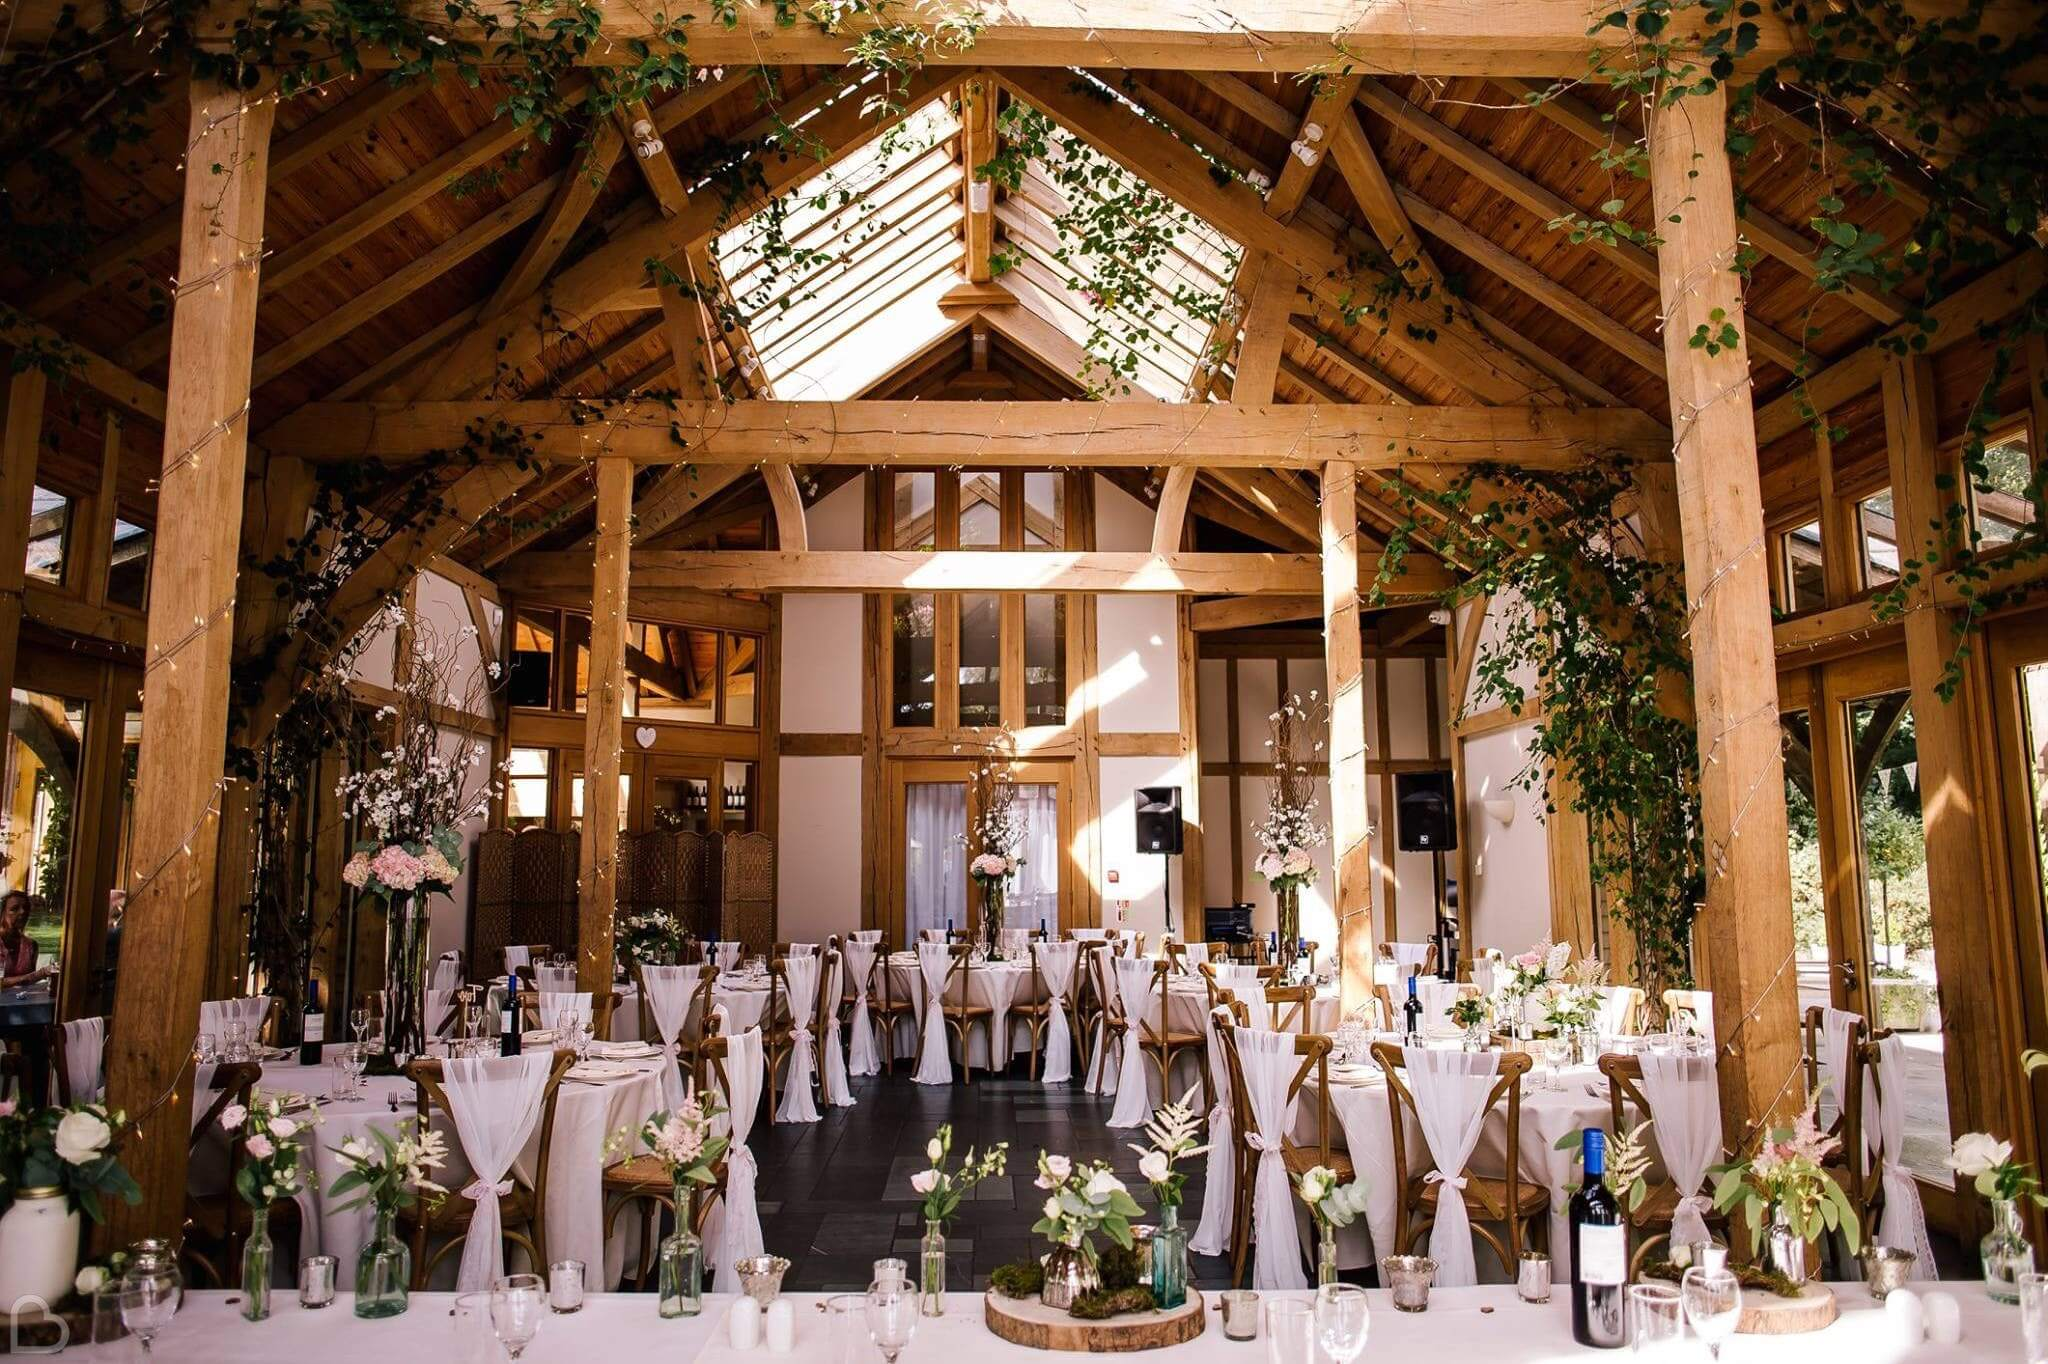 The Oak Tree of Peover, an exclusive user wedding venue